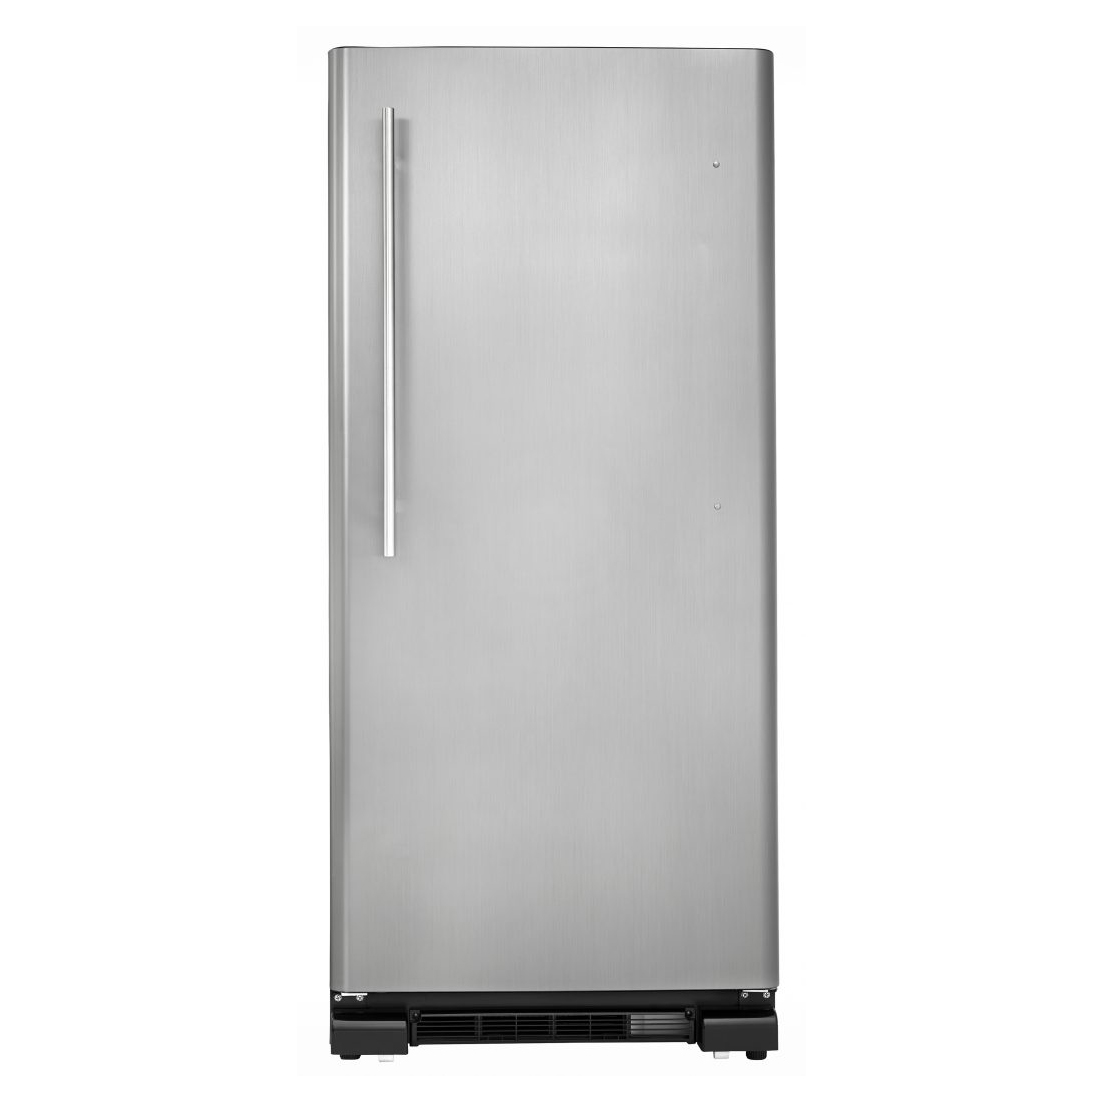 Apartment Fridge: Danby Designer 17 Cu. Ft. Apartment Basement Sized